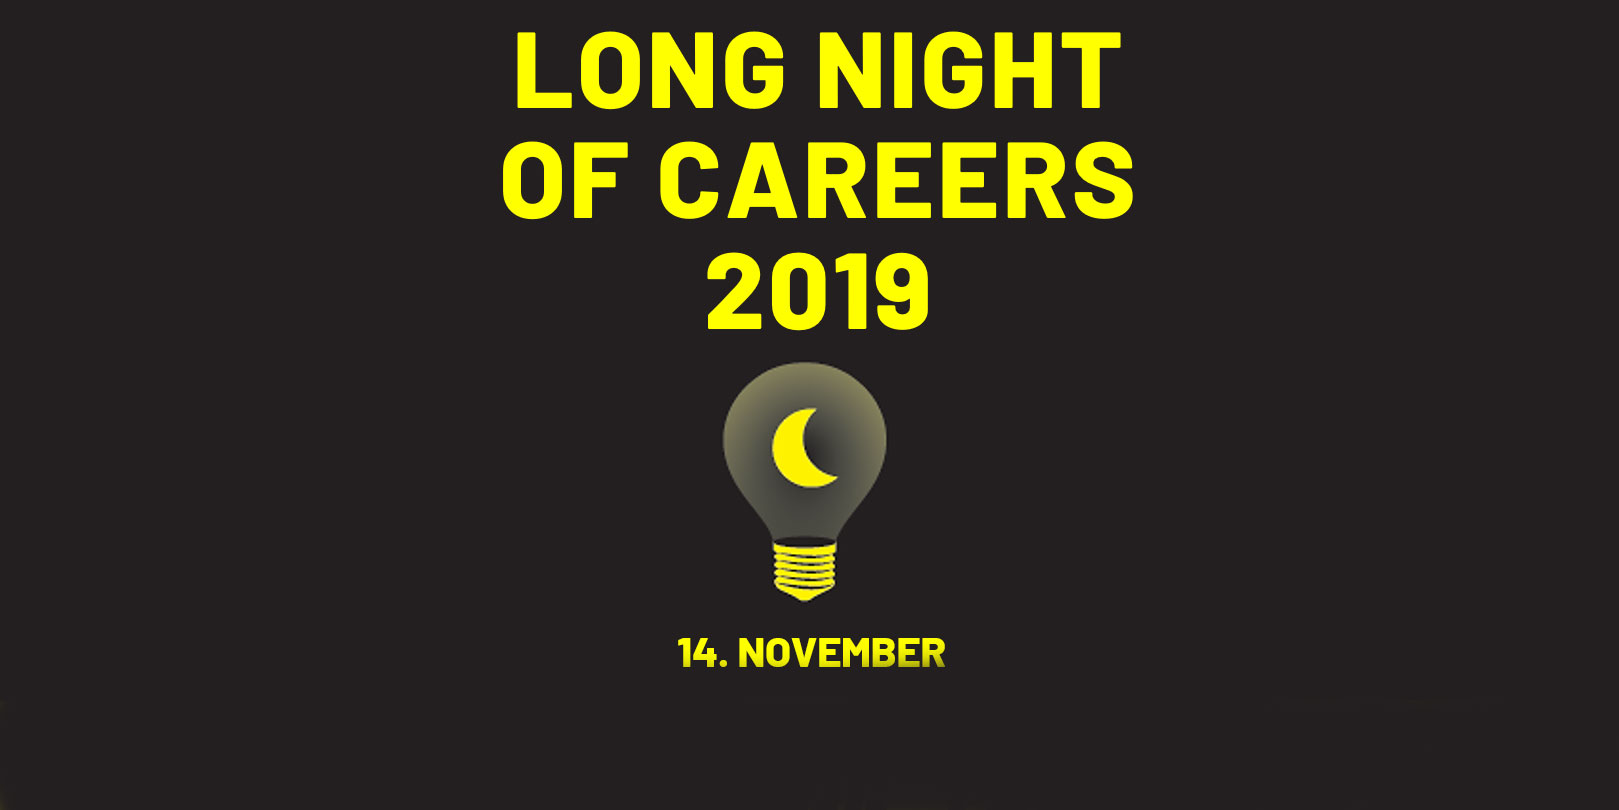 Long night of careers 2019